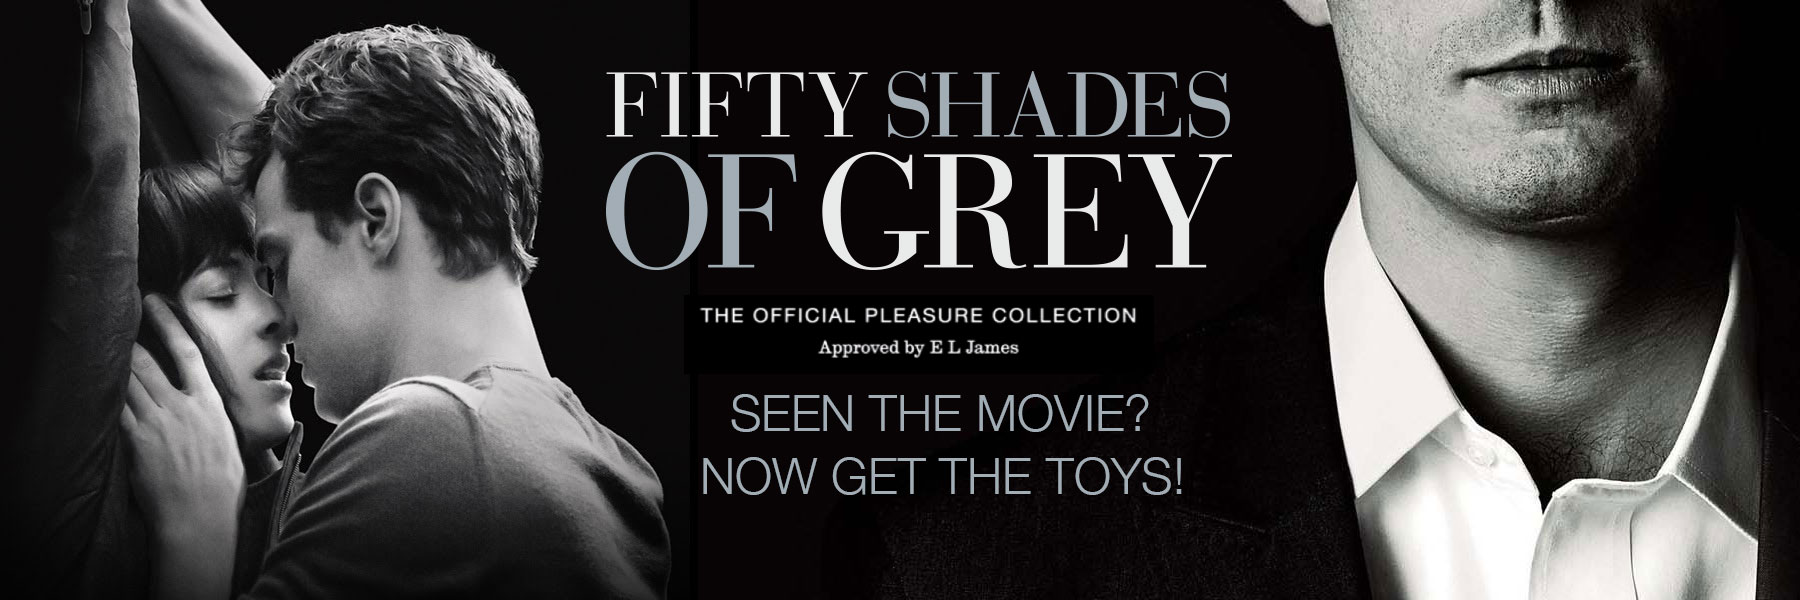 Fifty Shades of Grey, Sex Toy Sale, Bed Time Toys, Sex Toys Canada